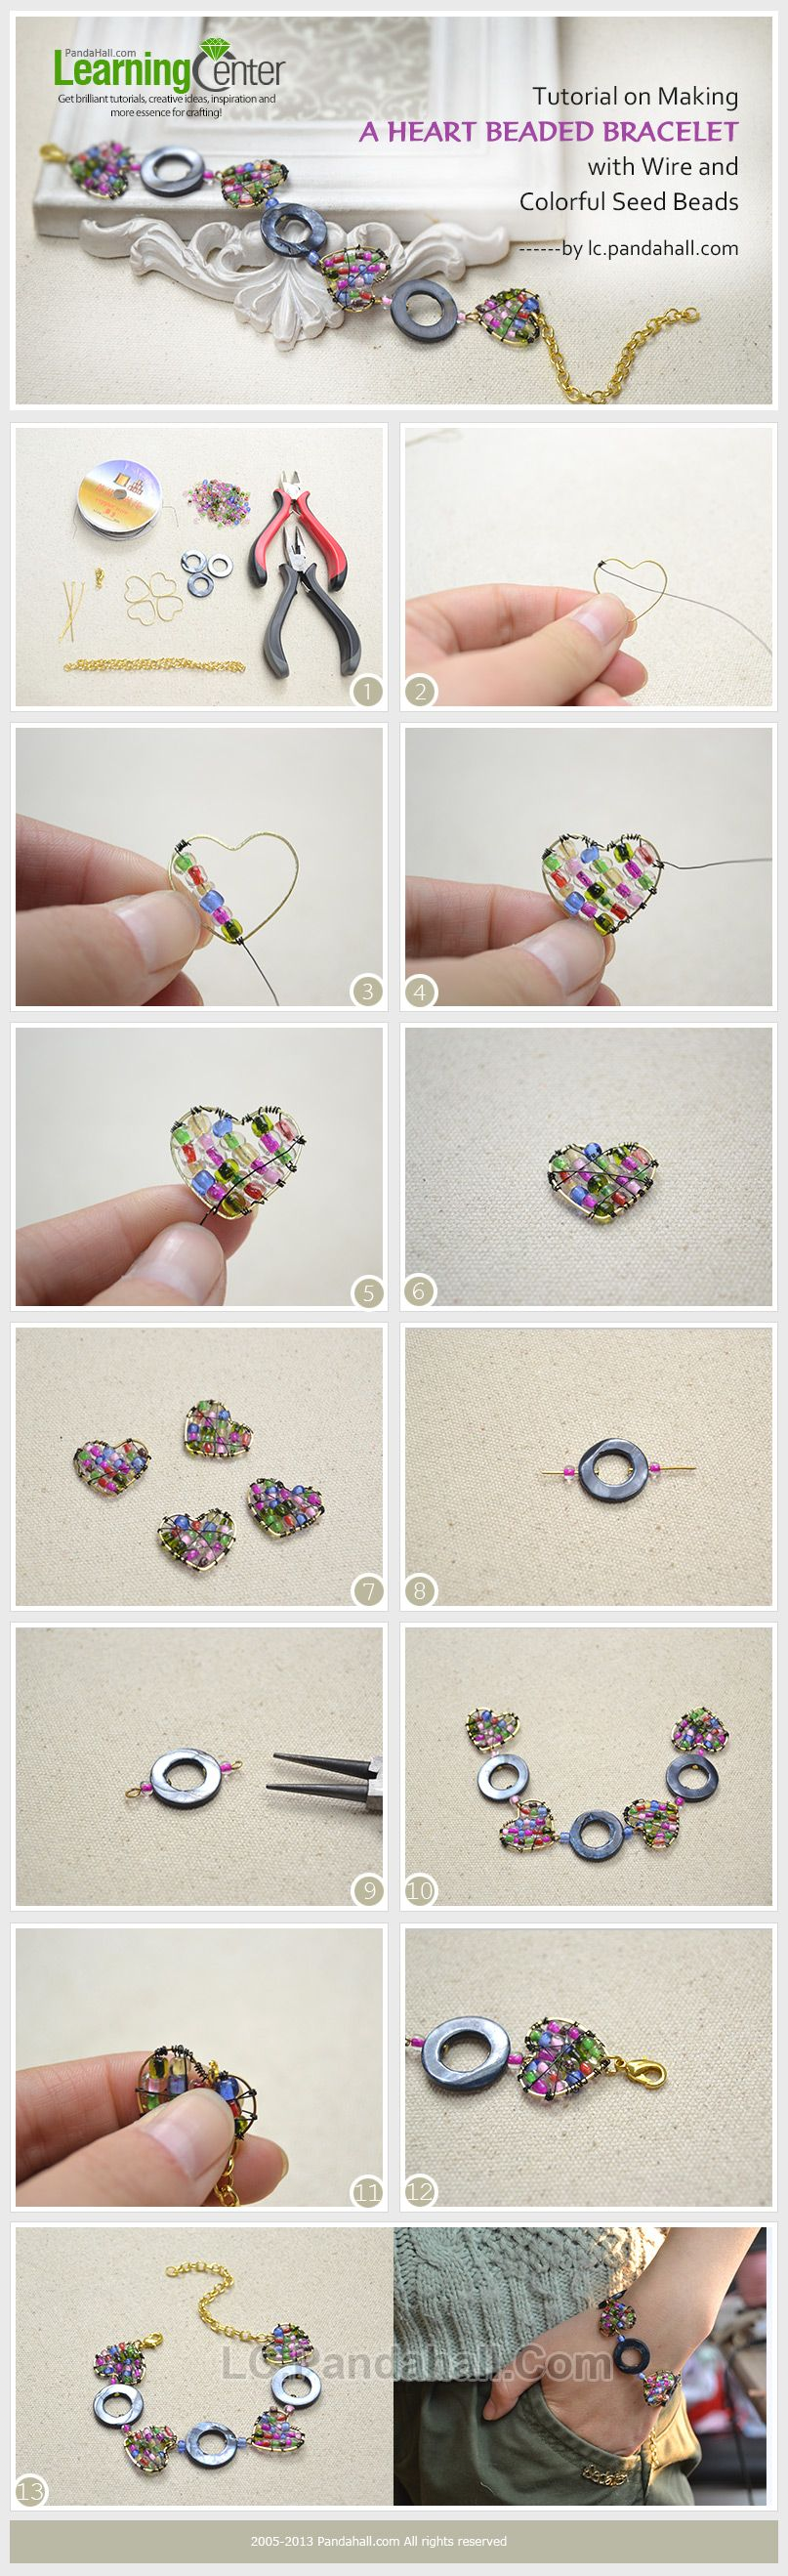 Tutorial on Making a Heart Beaded Bracelet with Wire and Colorful ...